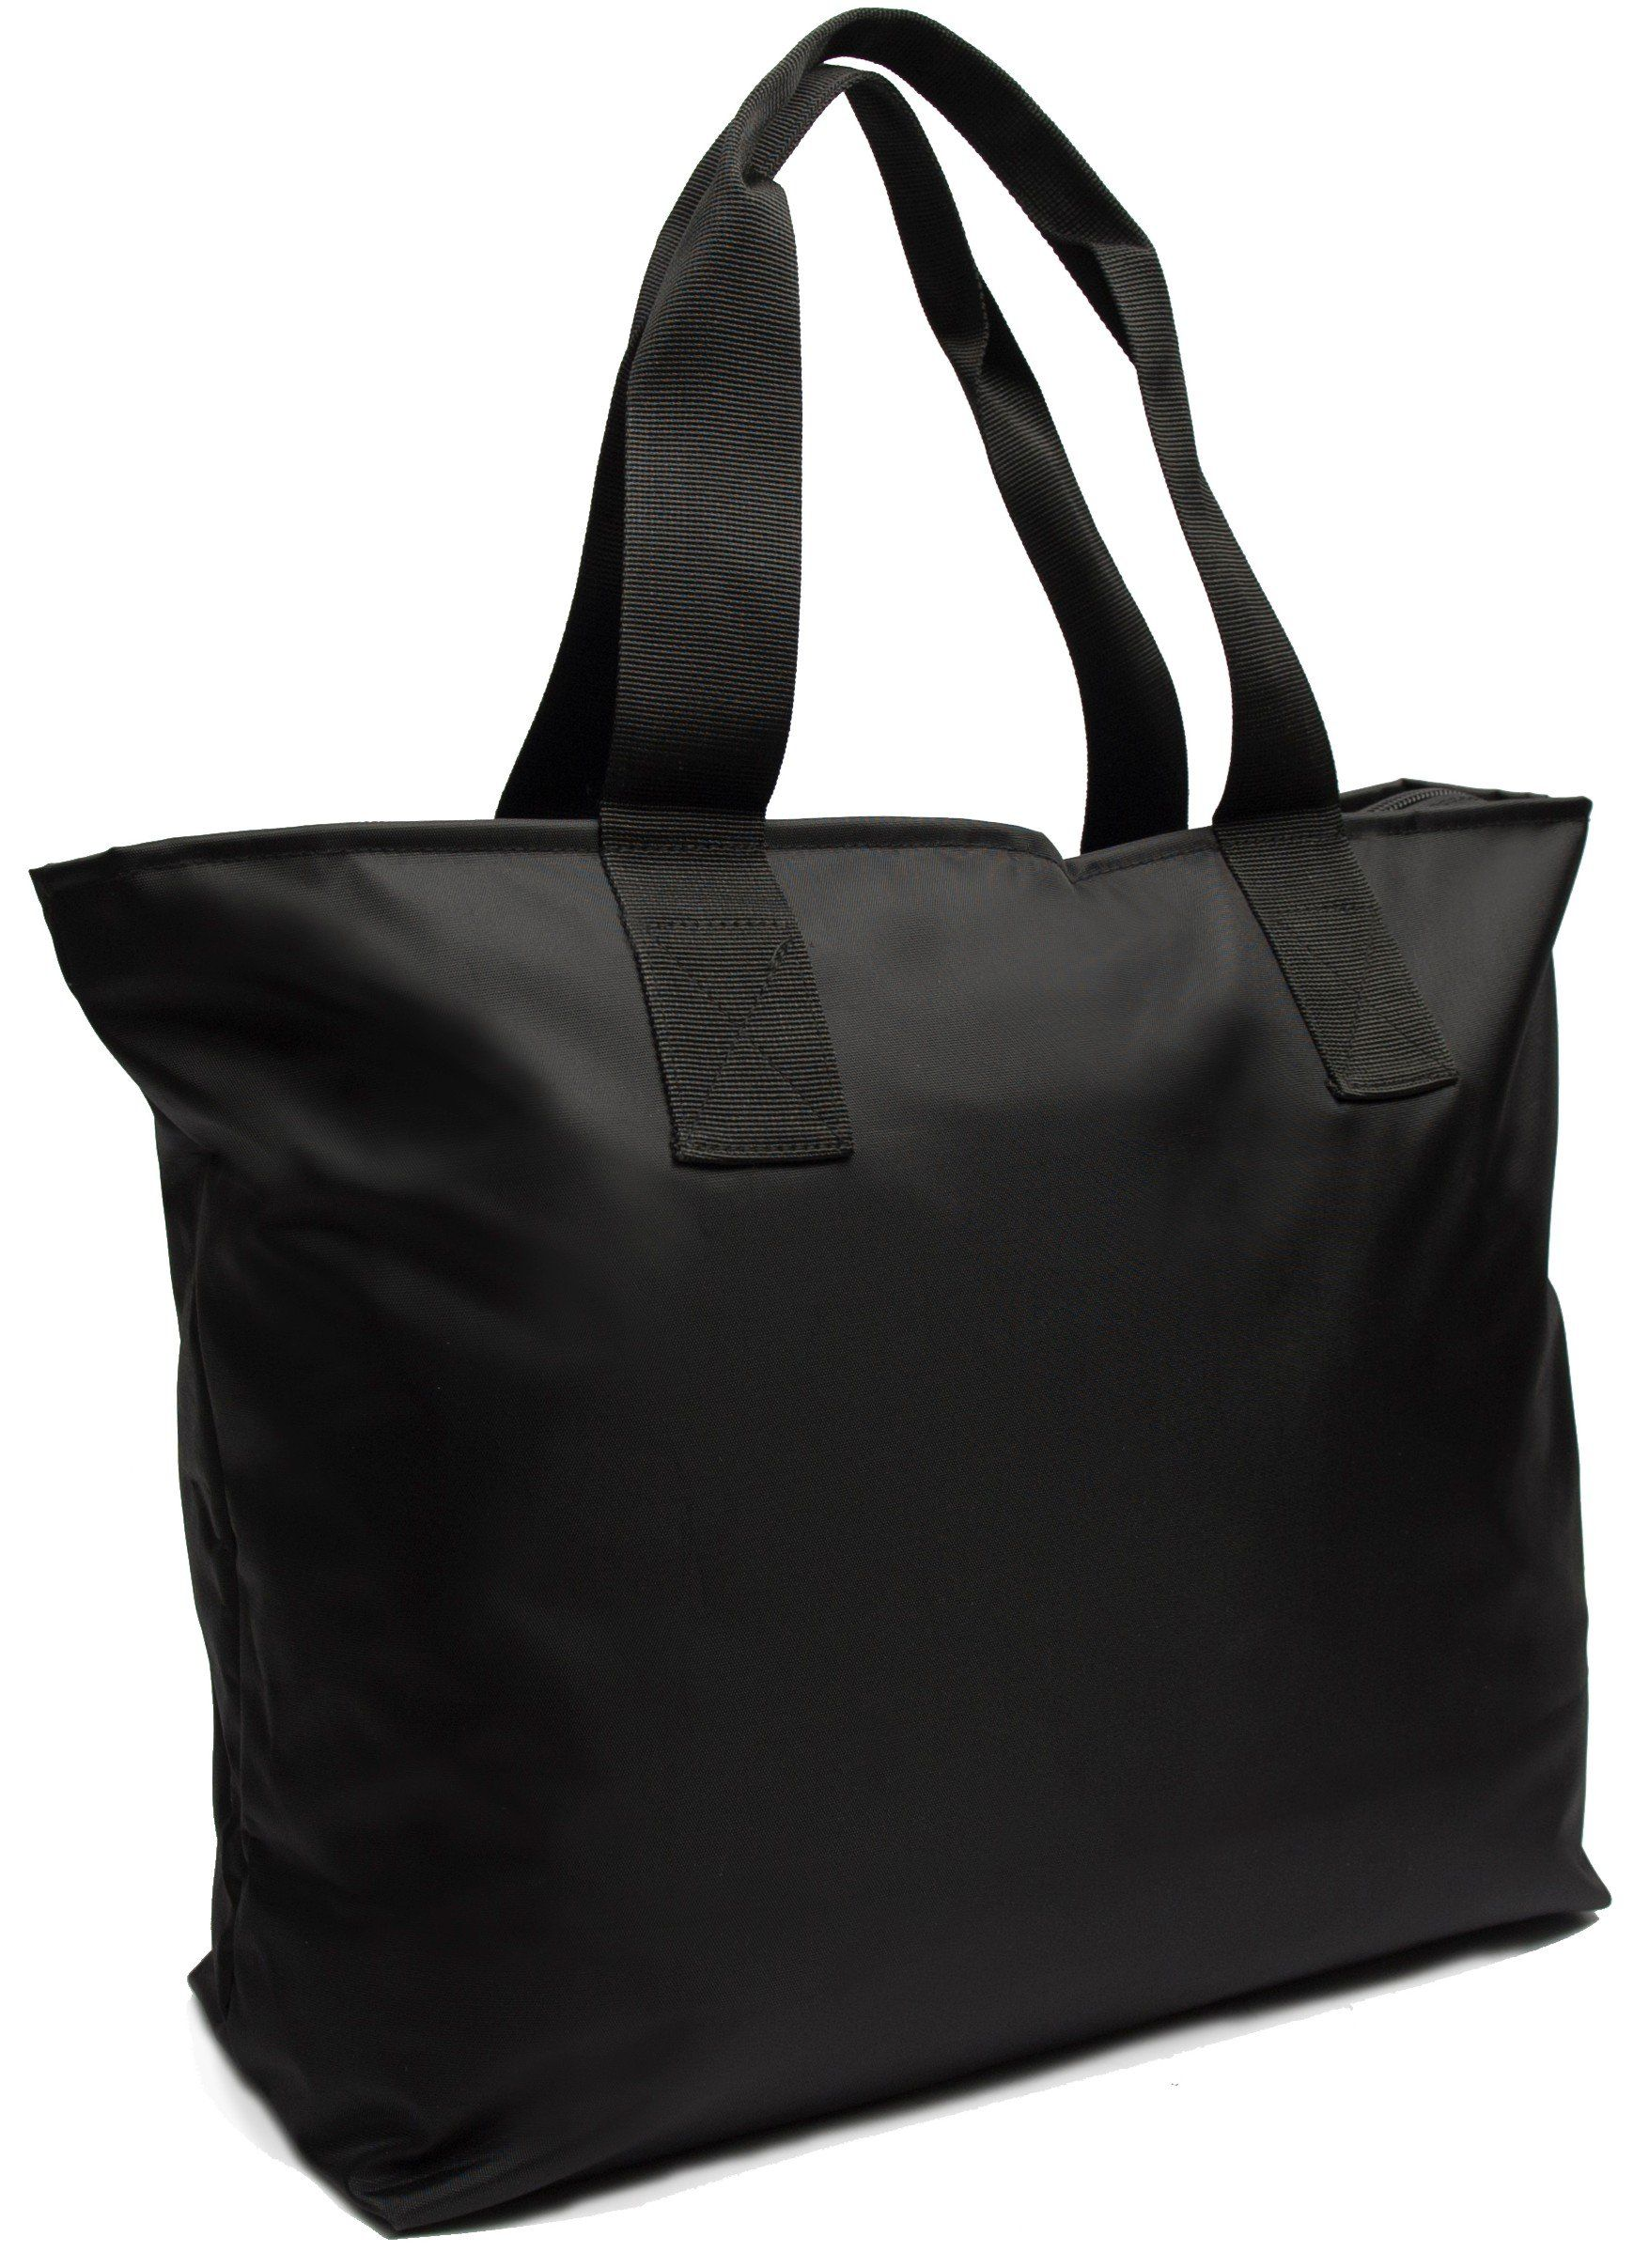 Large Nylon Tote Bag For Shopping, Beach, Sports, Gym - With ...